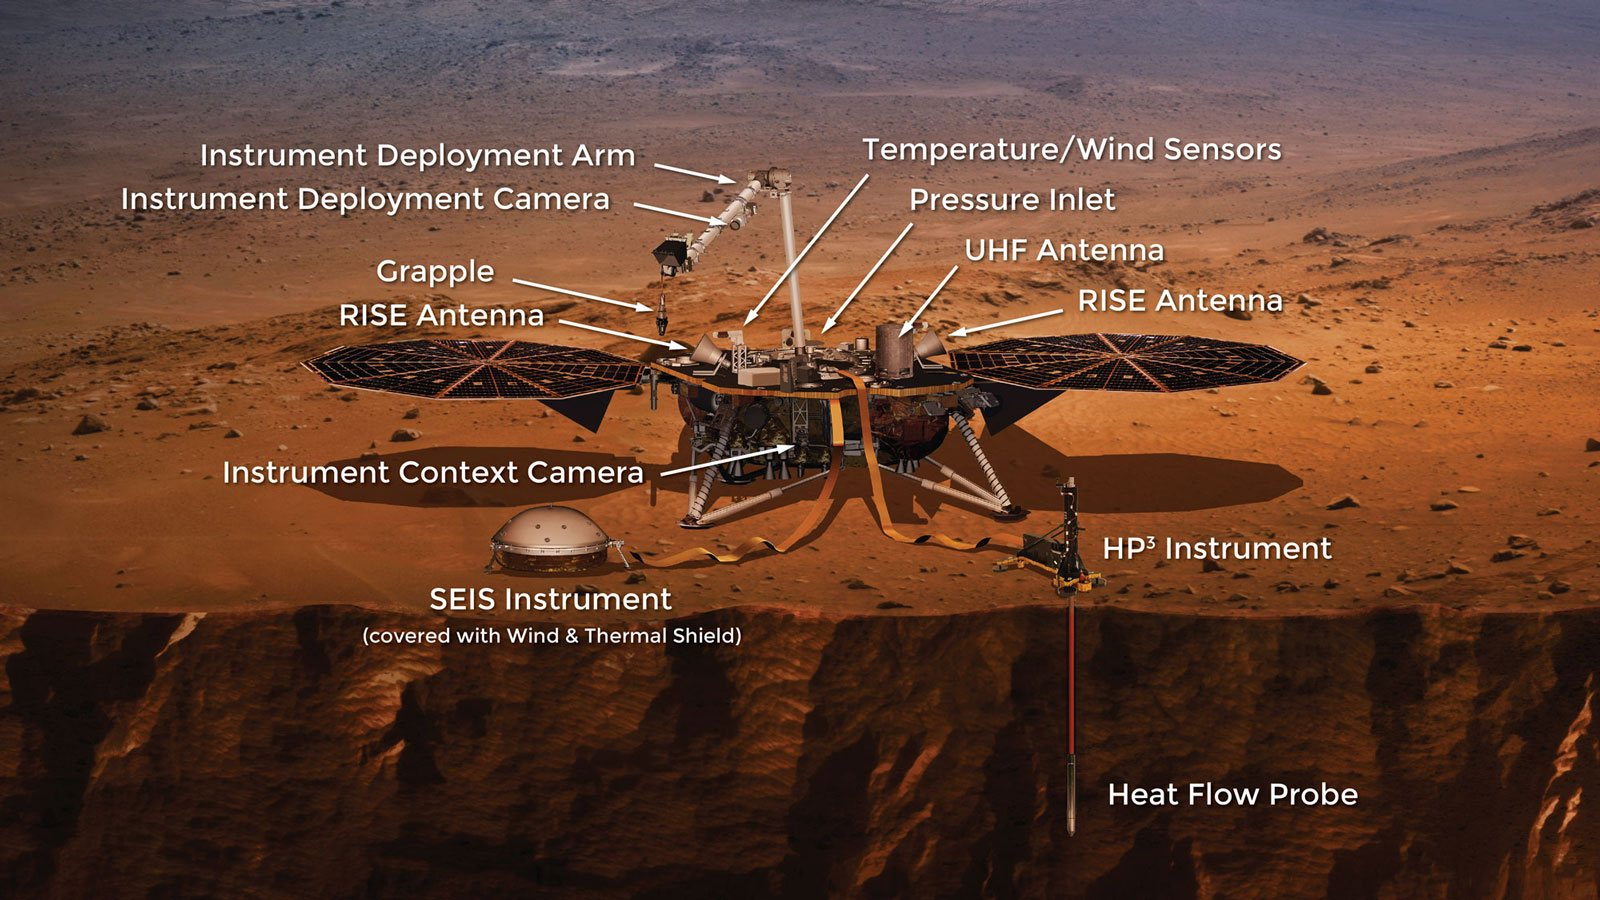 Insight instruments labeled